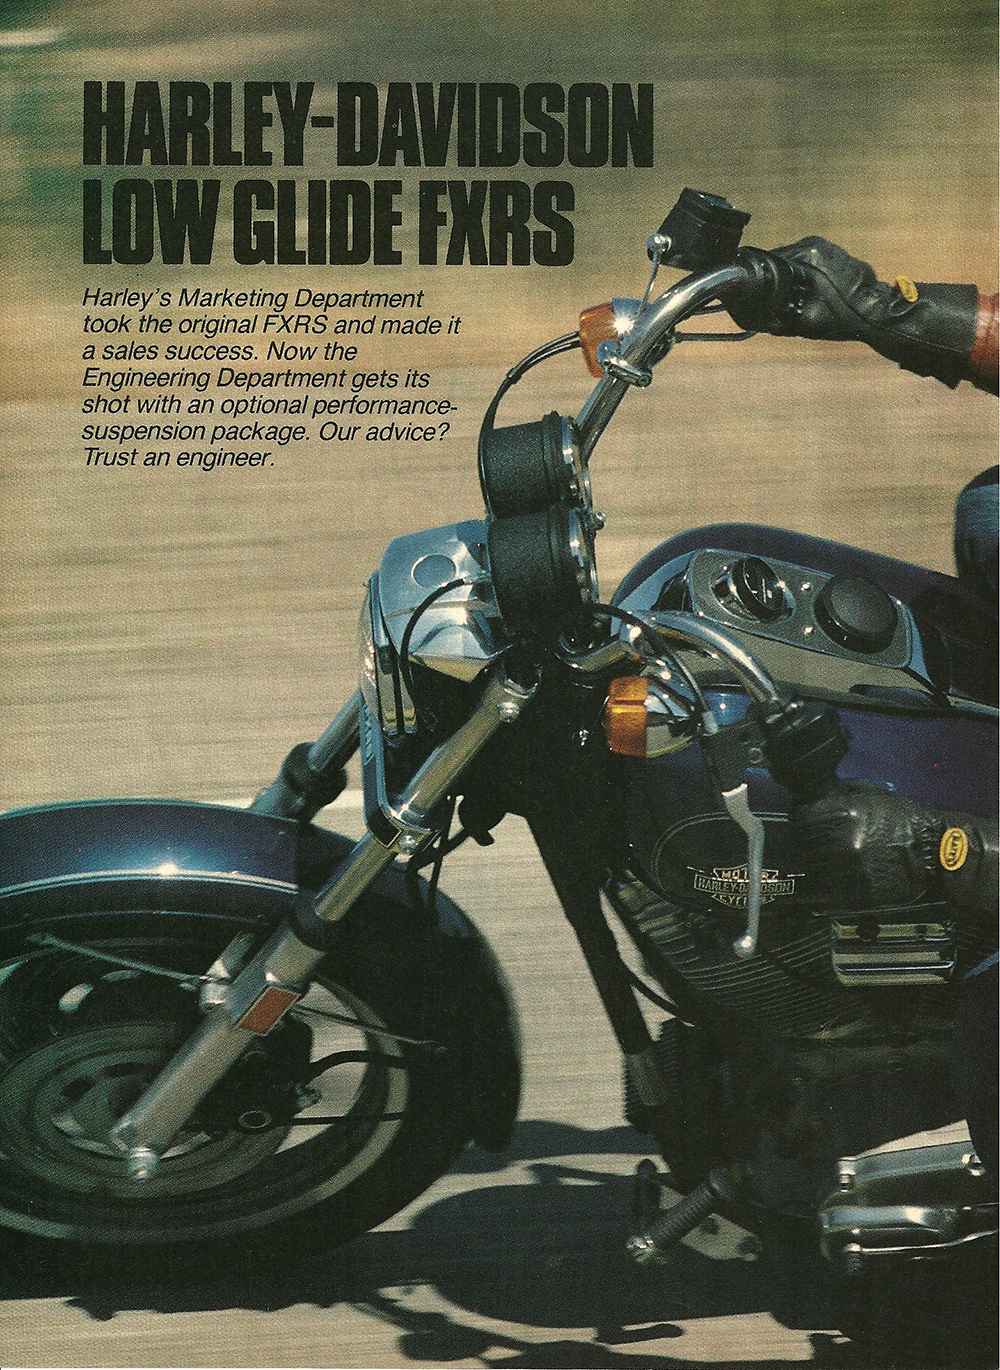 1984 Harley-Davidson Low Glide FXRS road test 1.jpg